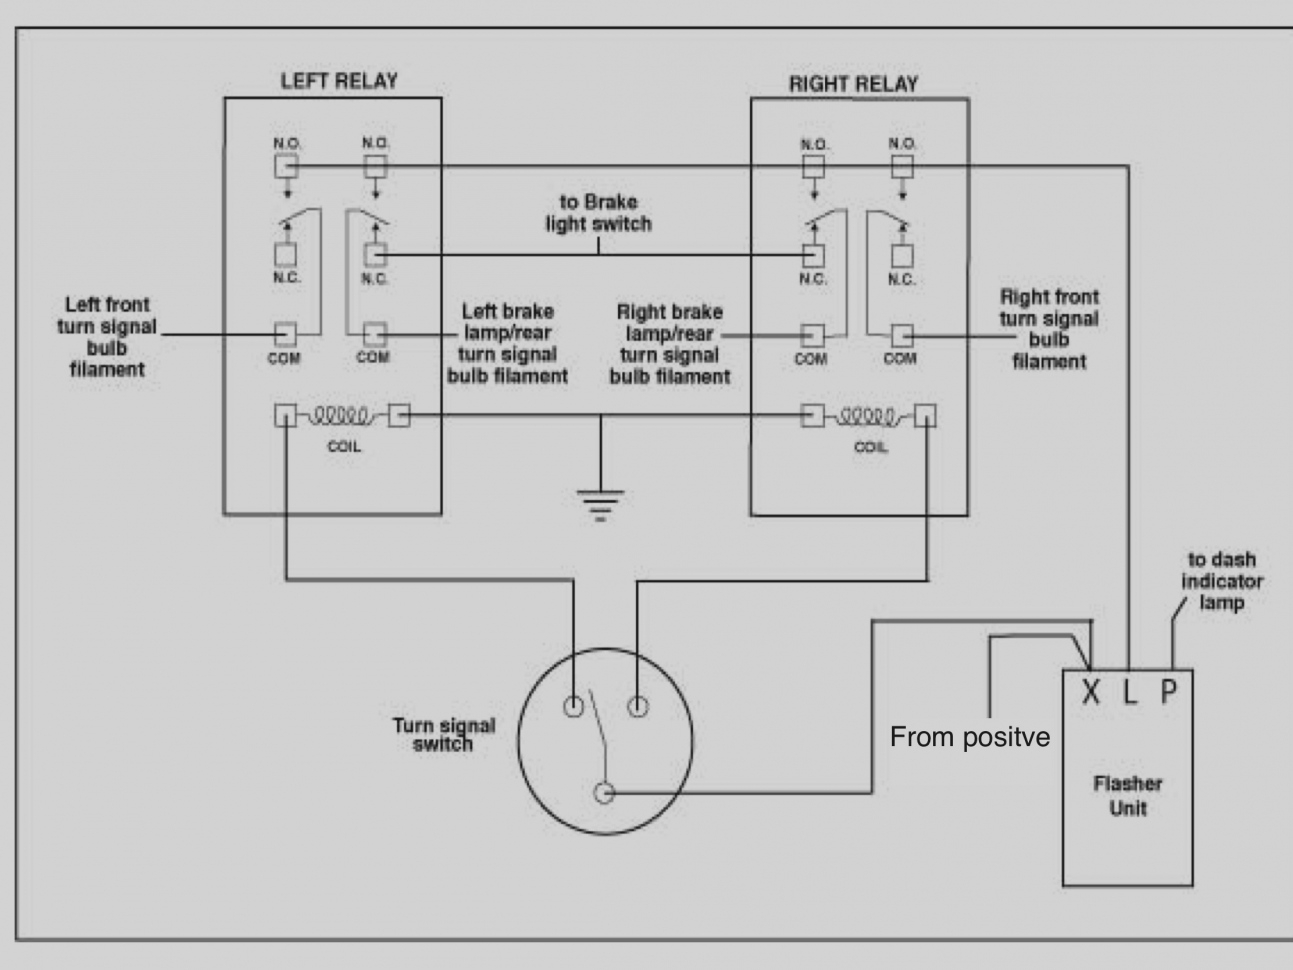 wiring diagram for 2010 rzr s 800 basic electronics wiring diagram 2014 Polaris RZR 800 Wiring Diagram wiring diagram for 2010 rzr s 800 wiring diagram2012 rzr s wiring diagram wiring diagrampolaris rzr